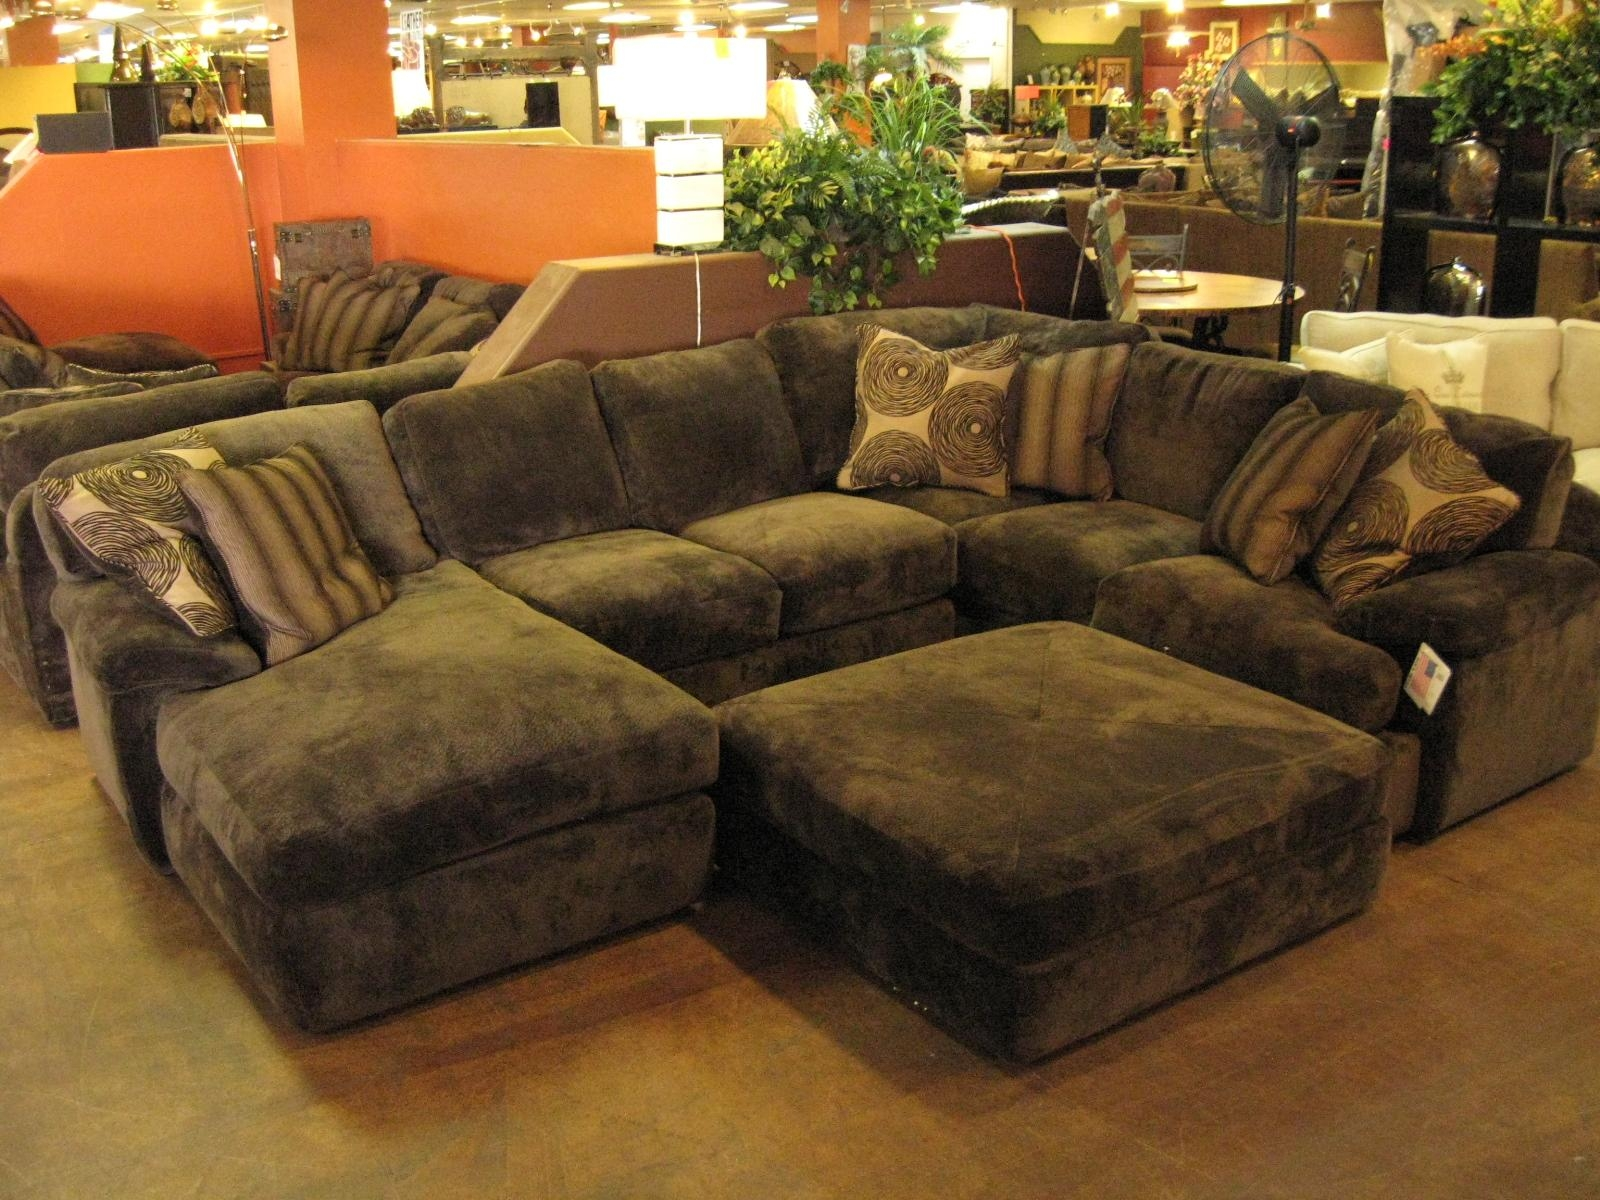 Sofas Center : Deep Sectional Sofa Seats Slipcoveroversized Sofas With Regard To Green Sectional Sofa With Chaise (Image 11 of 15)